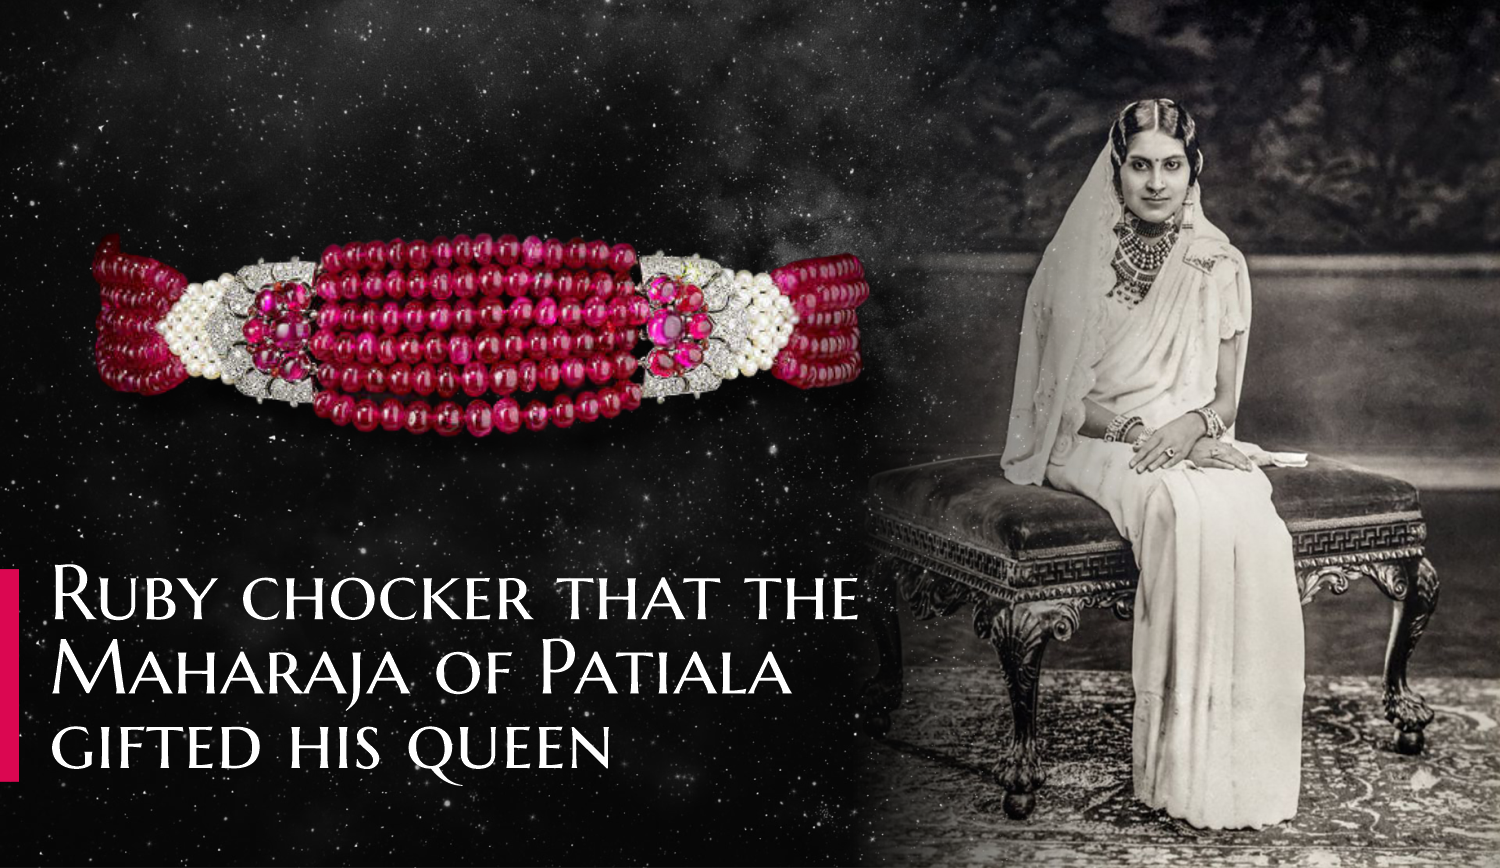 Read about this spectacular Ruby chocker that the Maharaja of Patiala gifted his queen